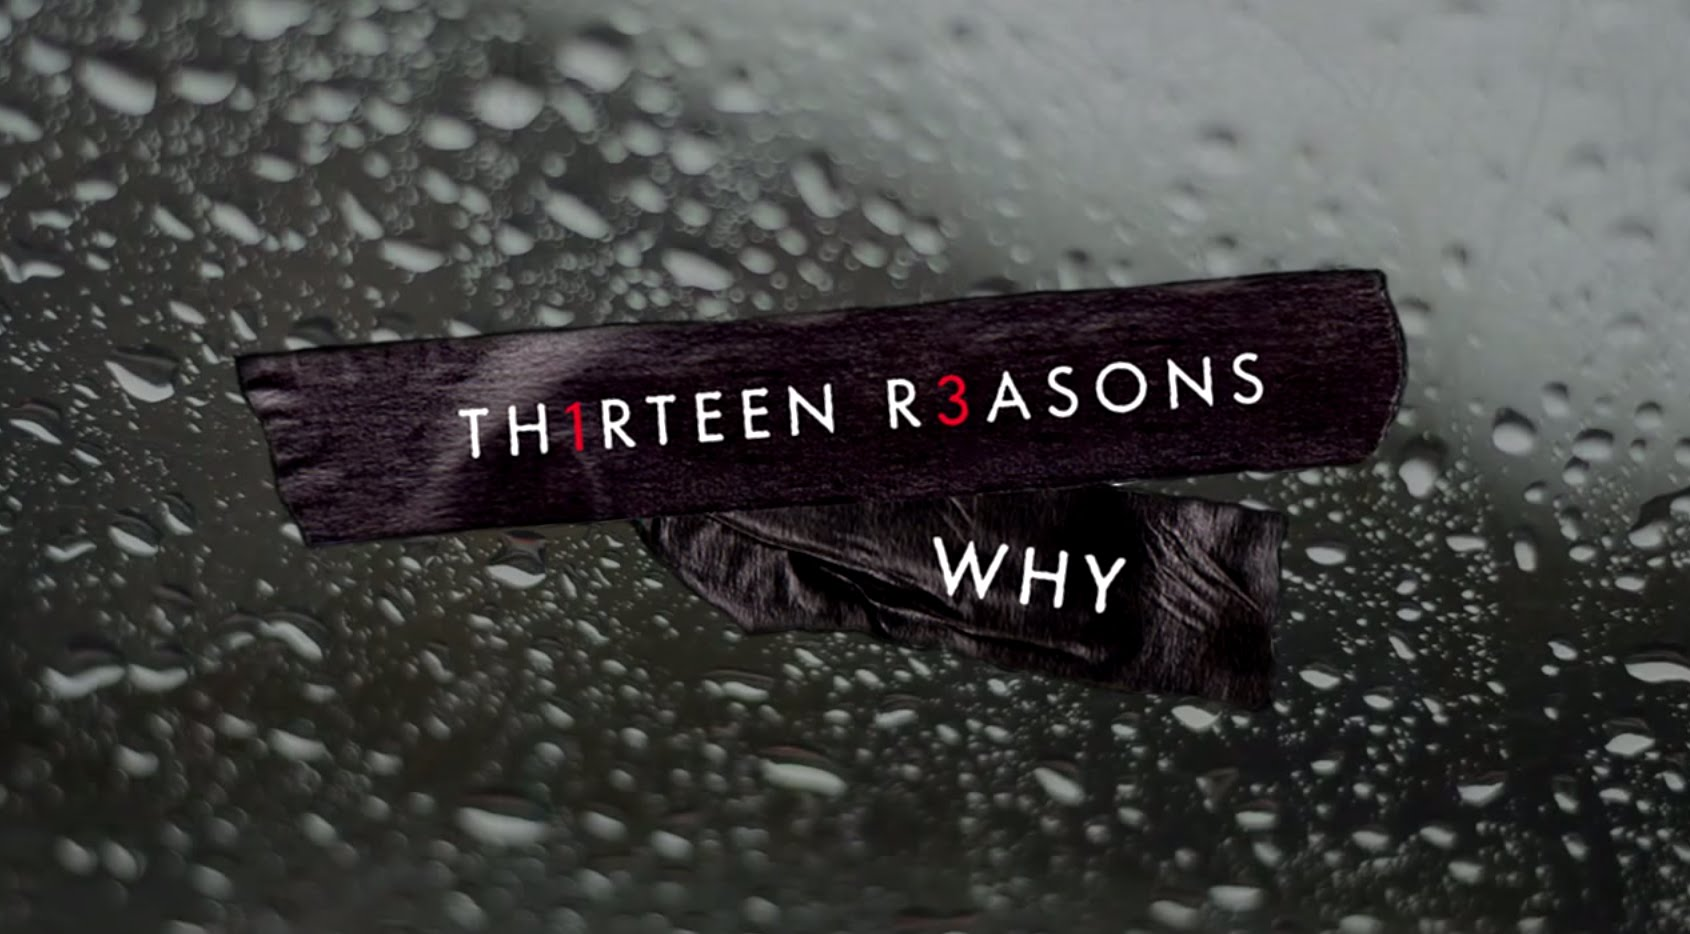 13 Reasons Why - critique de la série (Spoilers)